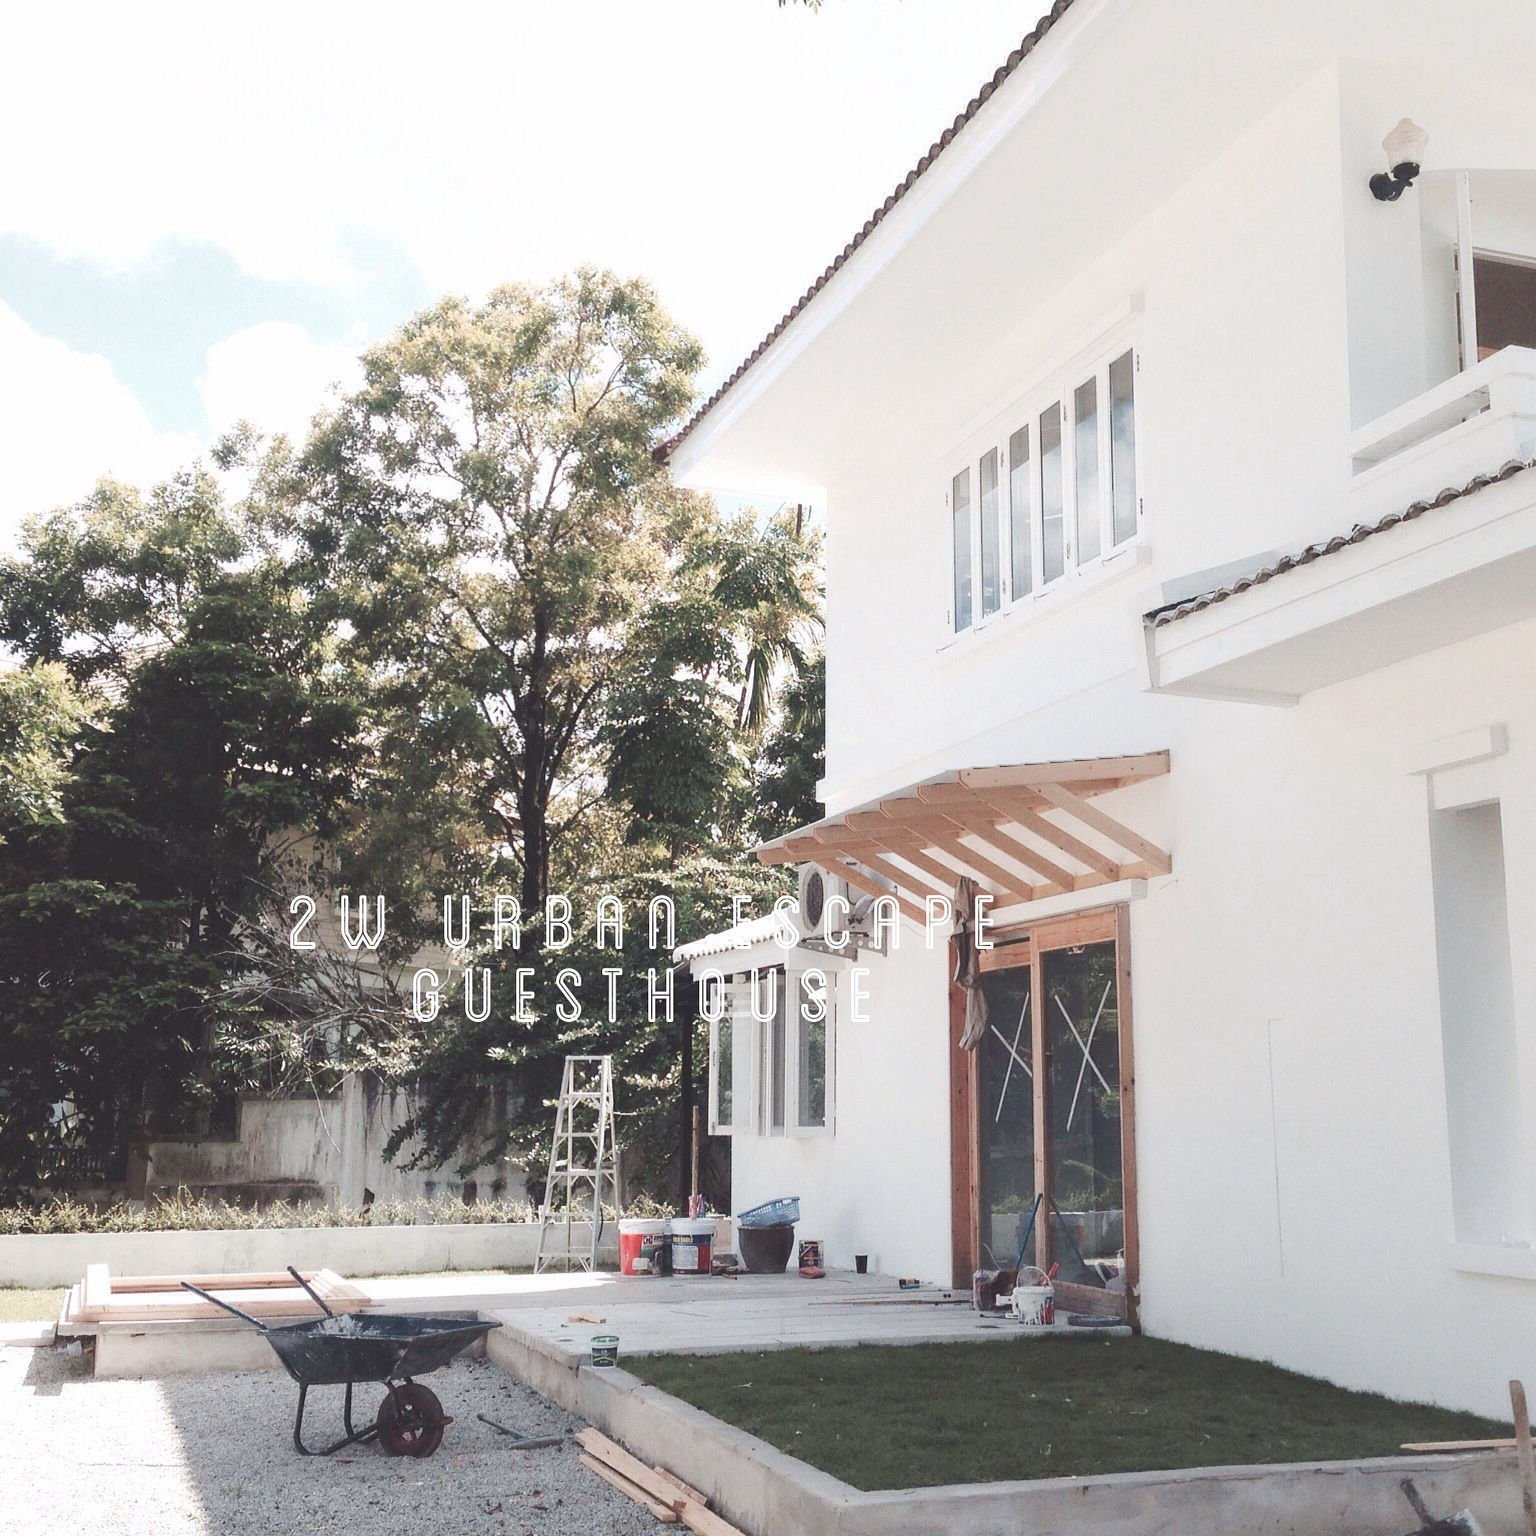 New style guesthouse in chalong phuket to be fully operated in